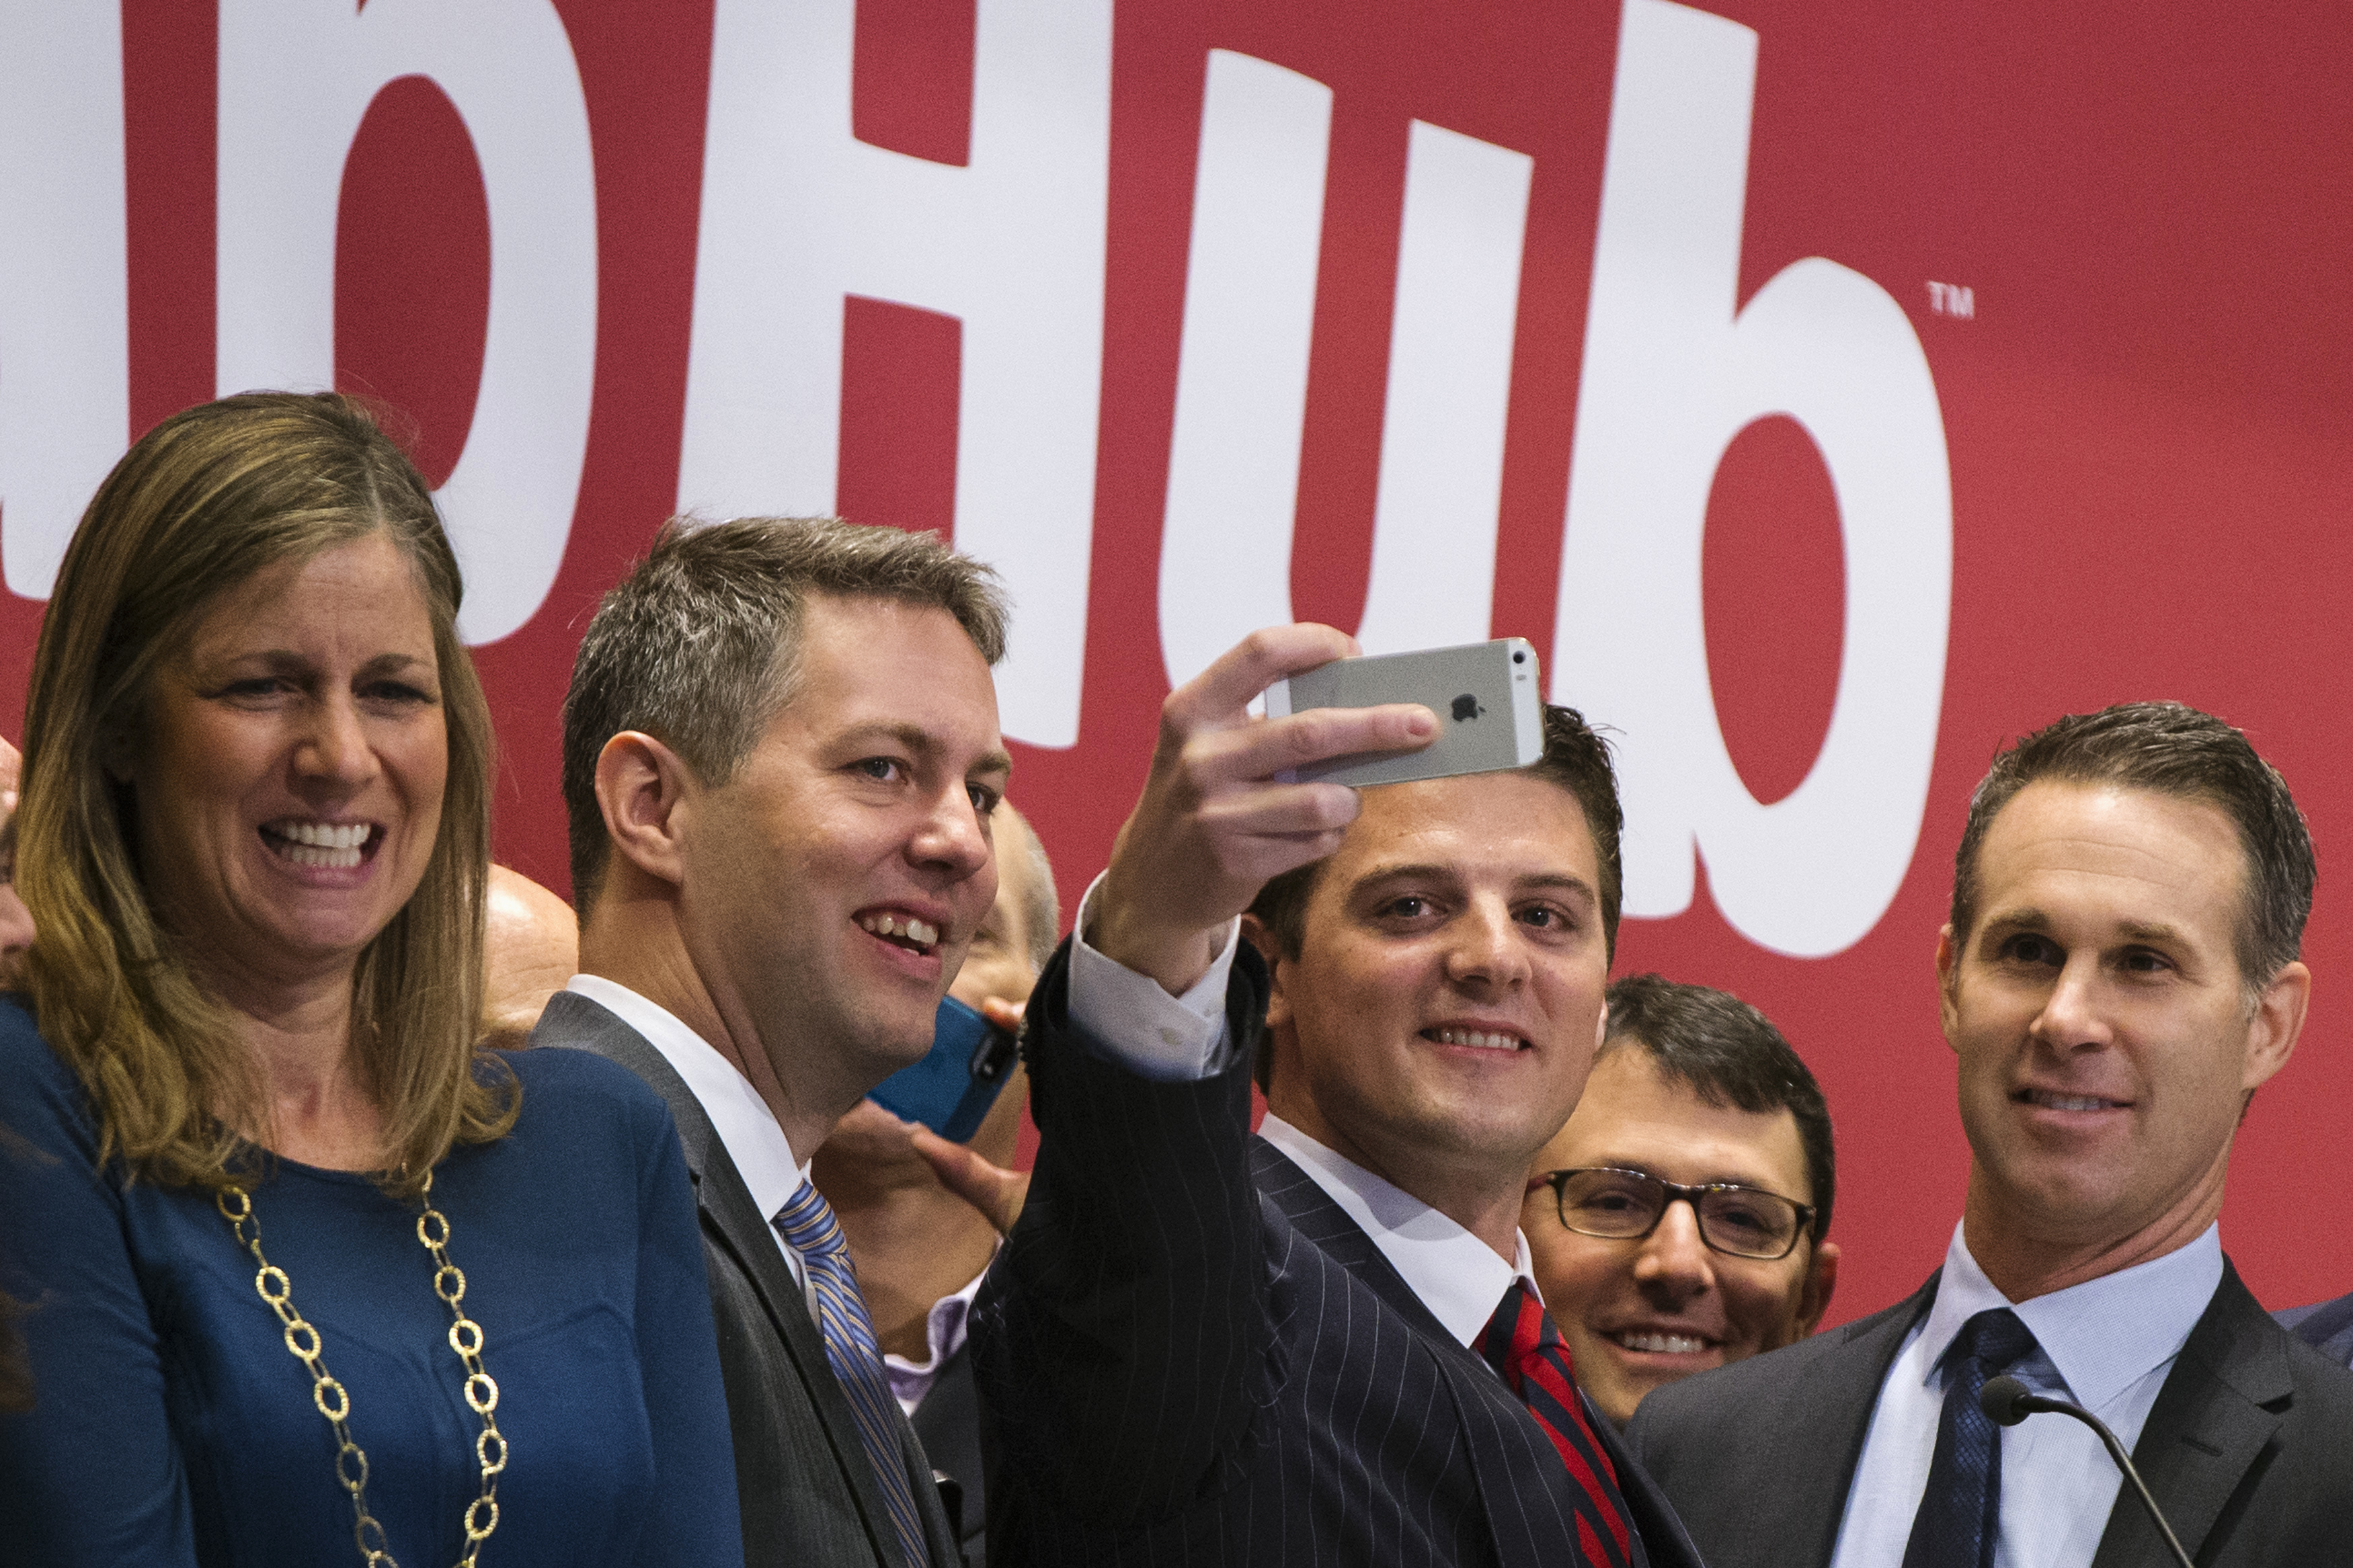 """GrubHub CEO Matt Maloney (2nd R) takes a """"selfie"""" photograph before ringing the opening bell, before the company's IPO on the floor of the New York Stock Exchange"""